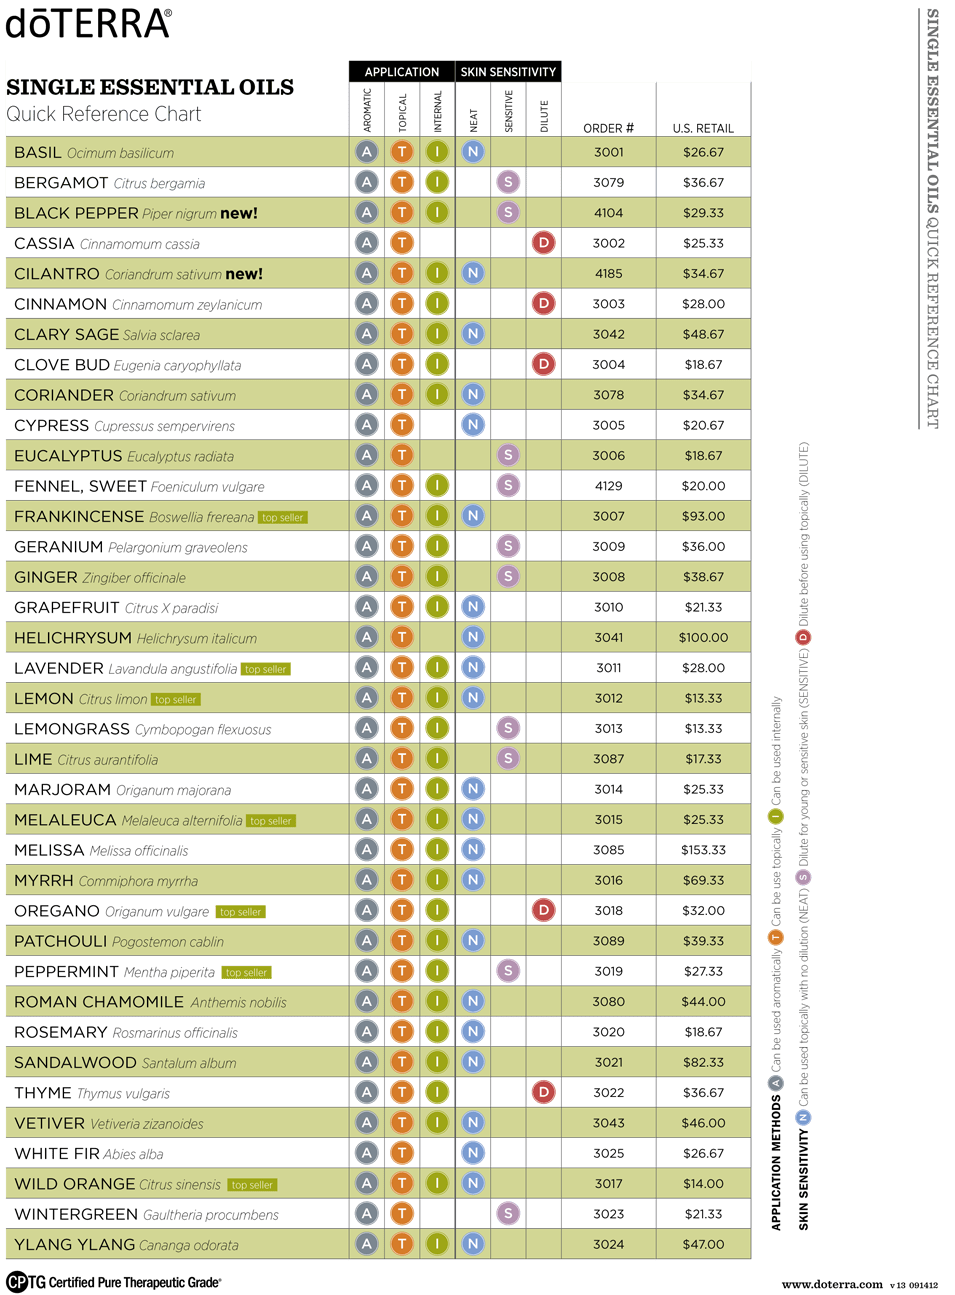 picture regarding Essential Oils Chart Printable called Crucial Oils Chart Pdf - Arenda-stroy